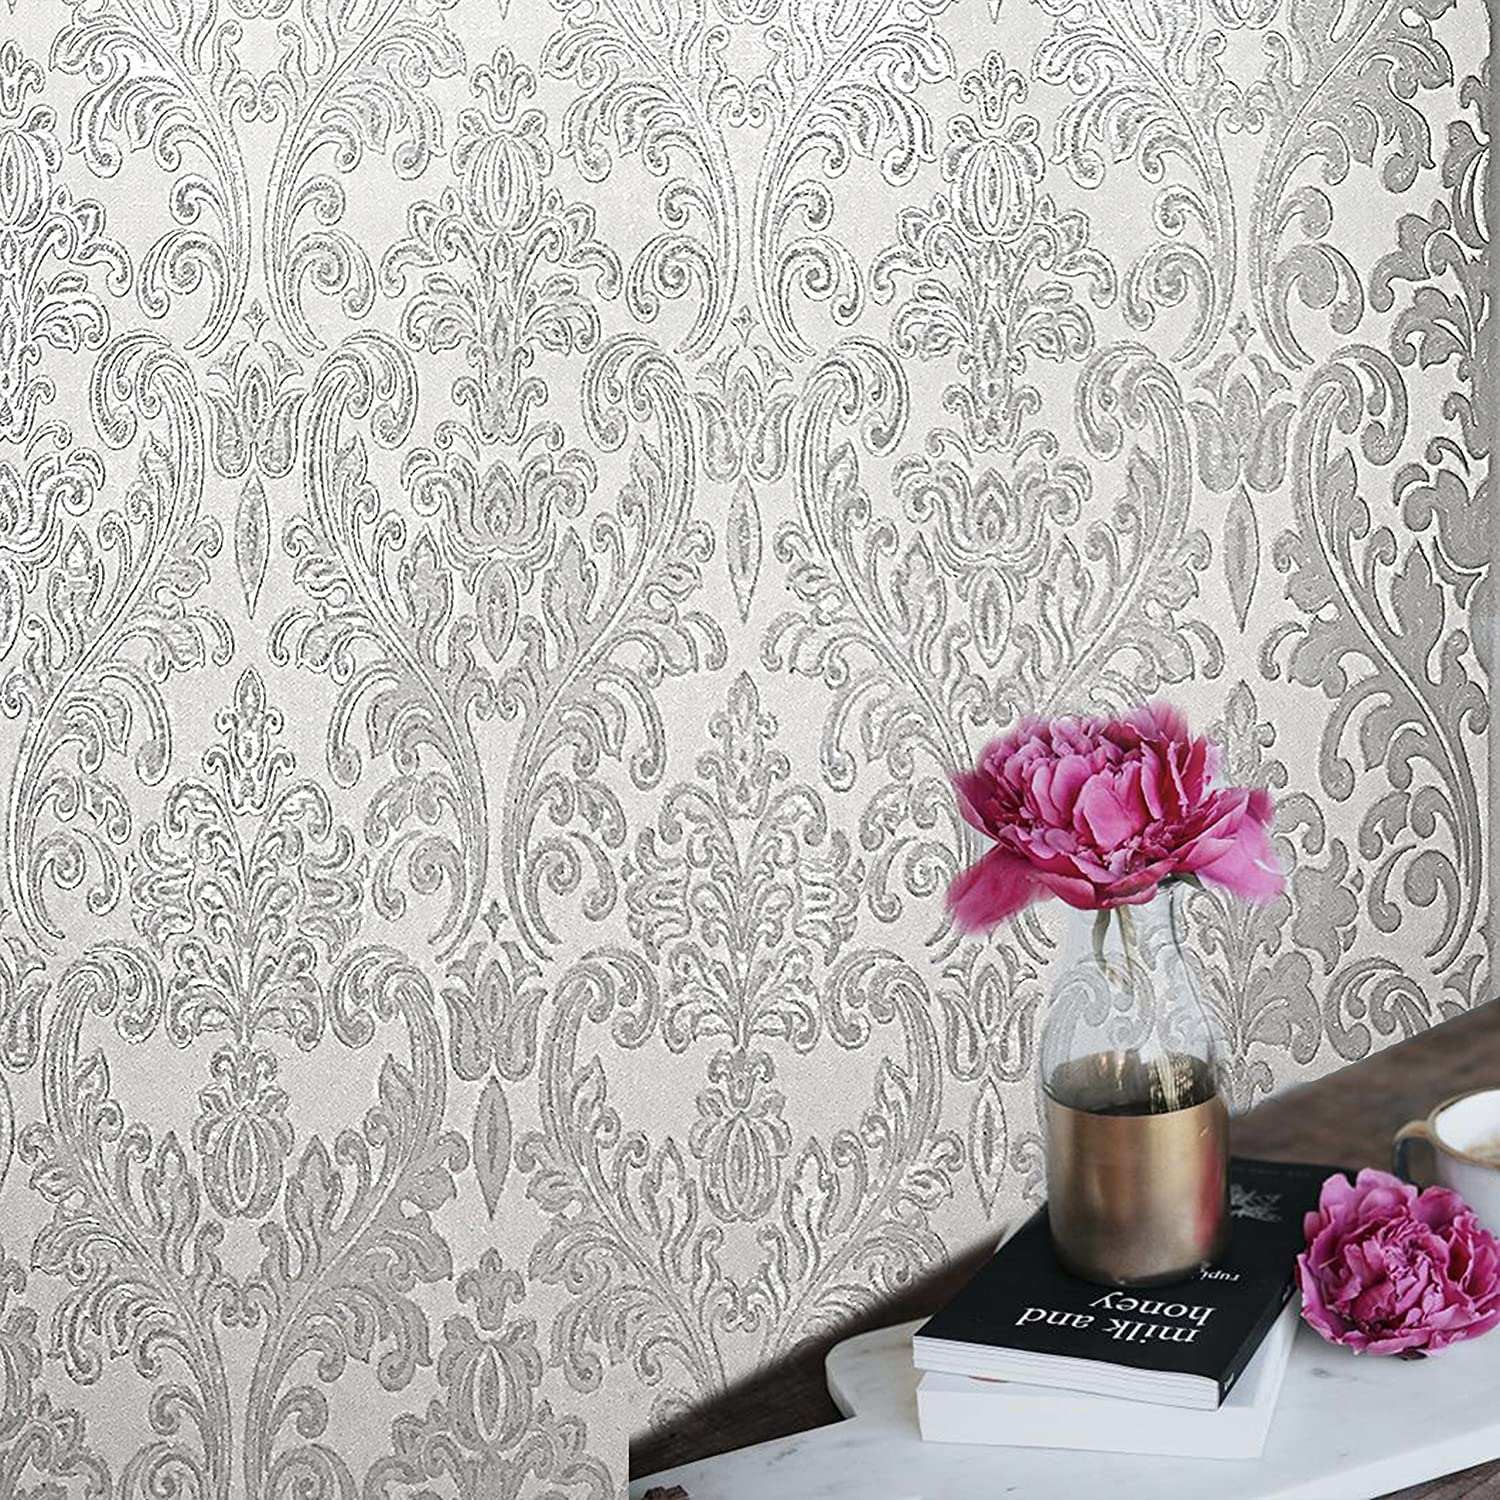 paste wall only Premium Embossed European Slavyanski modern roll wallcoverings washable victorian damask pattern Vinyl Non-Woven Wallpaper white gray grey silver glitters metallic textured textures 3D